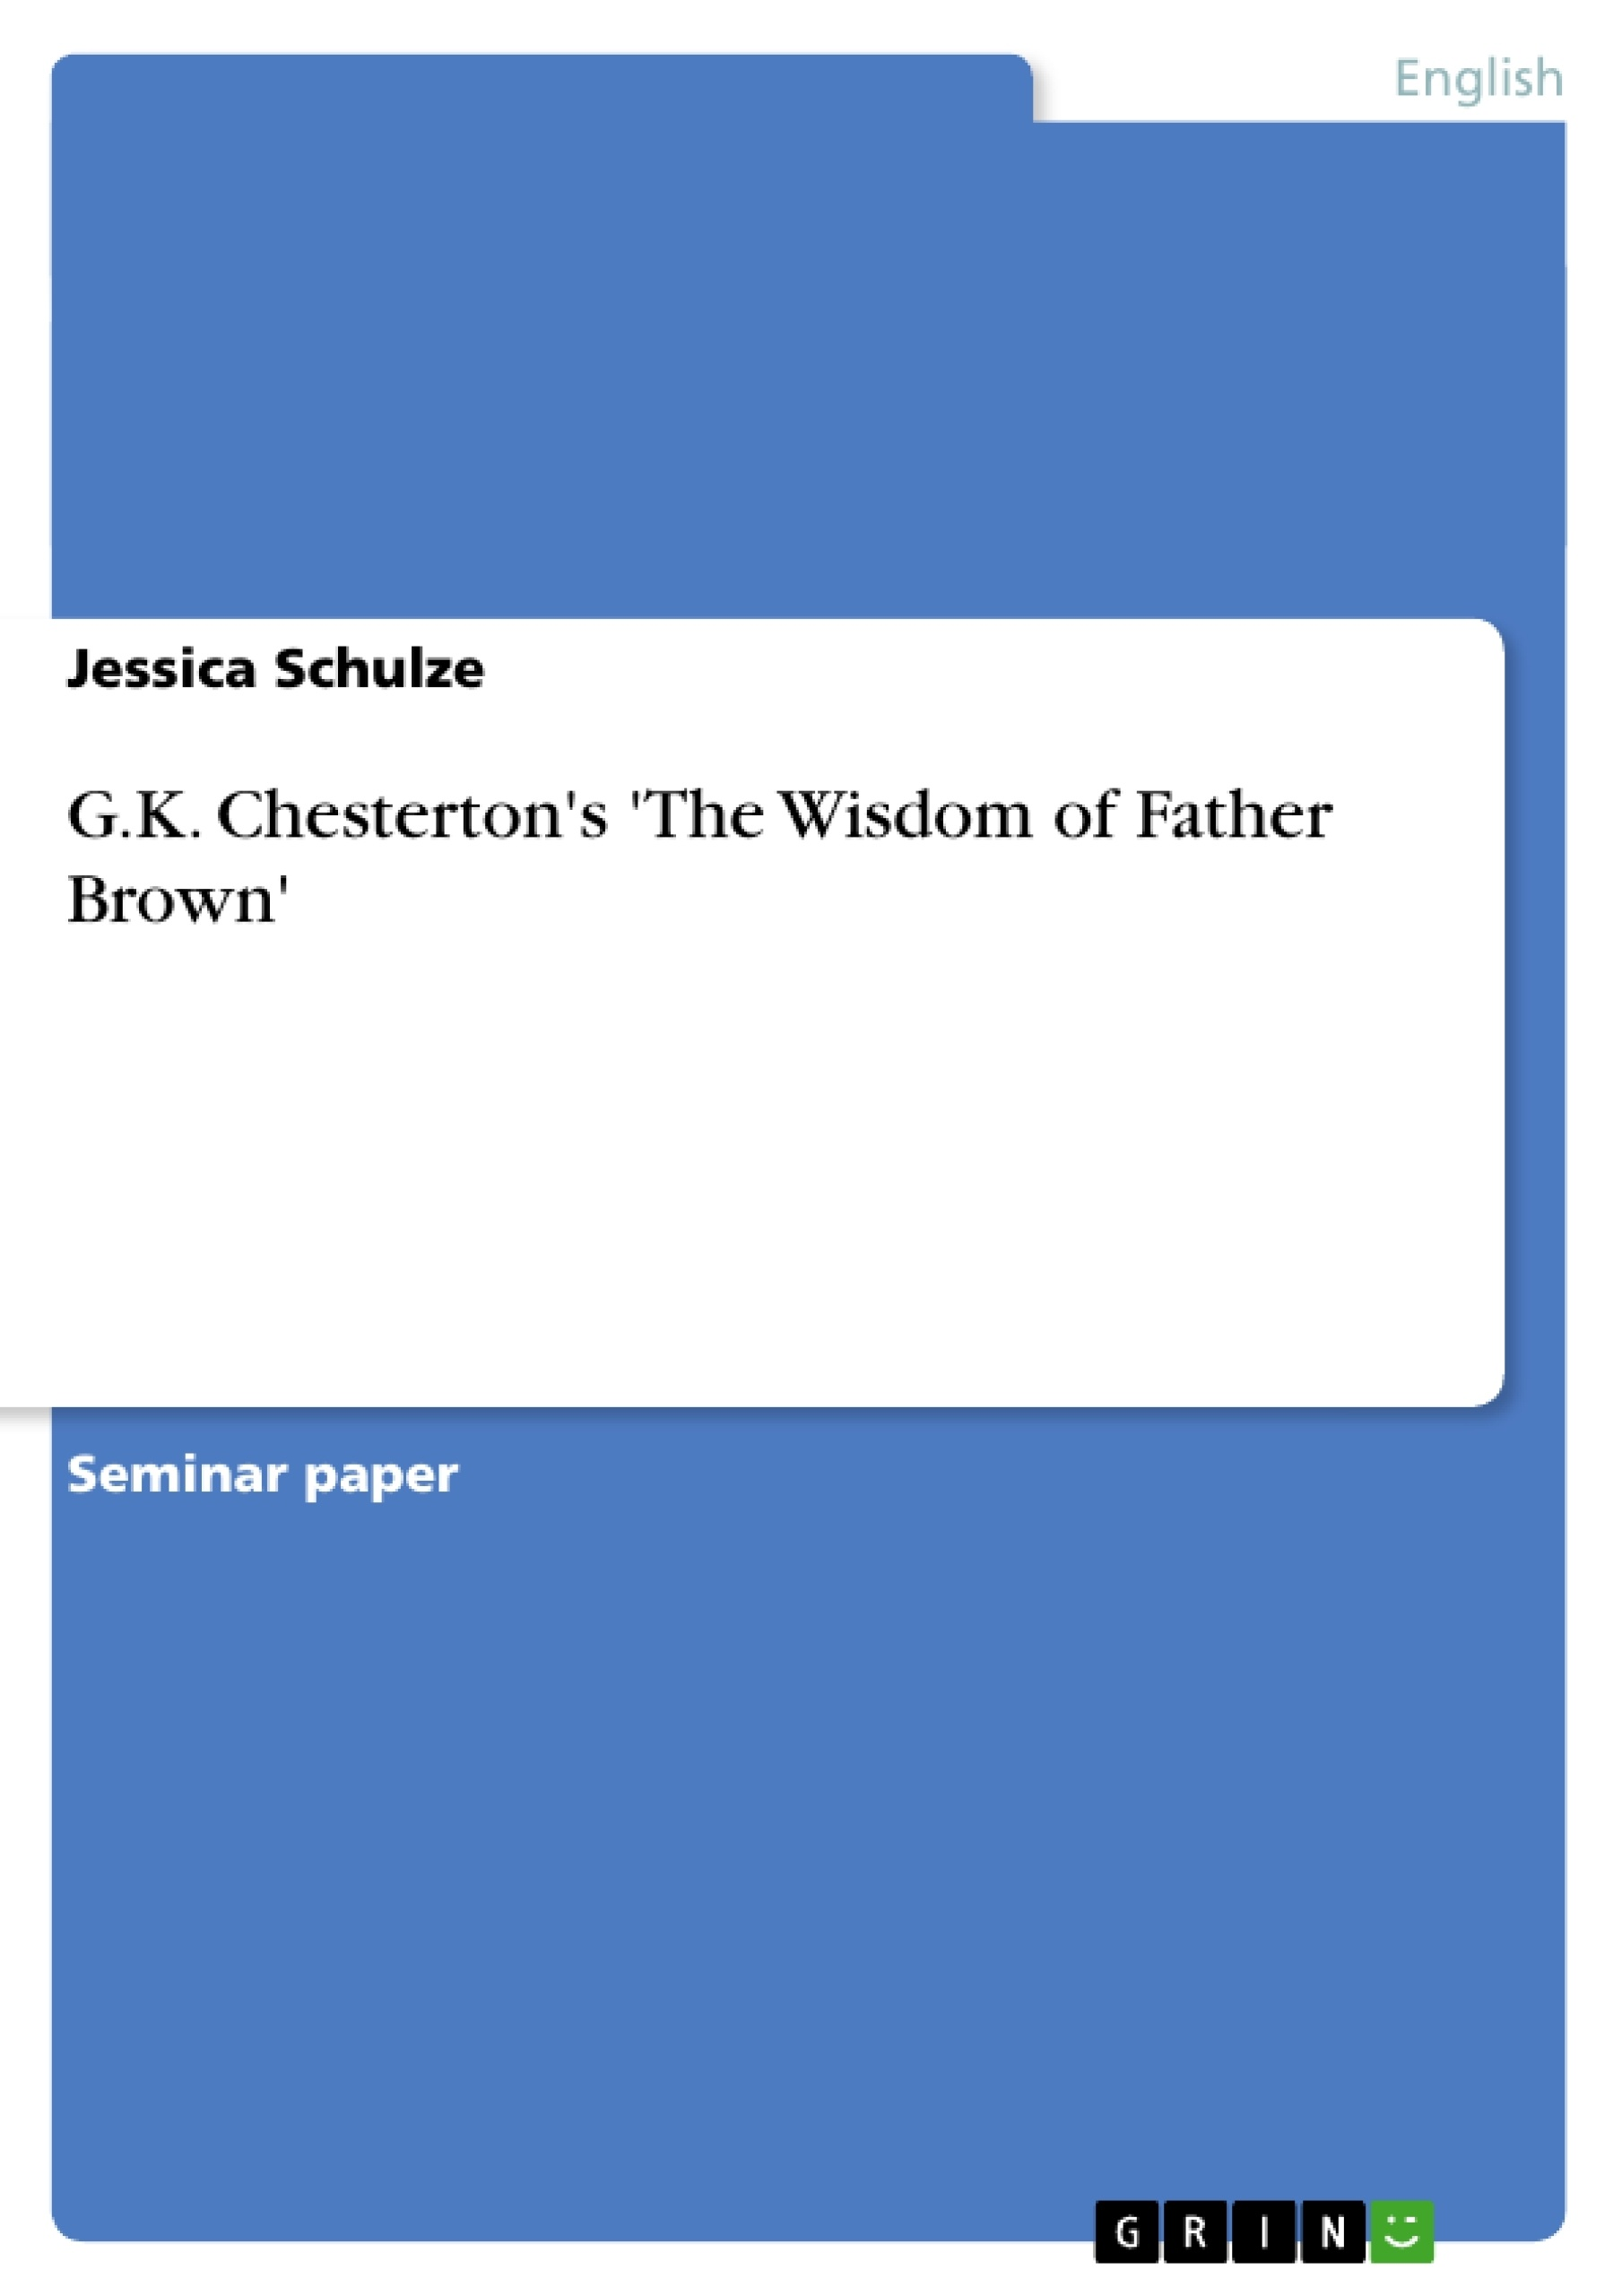 Title: G.K. Chesterton's 'The Wisdom of Father Brown'